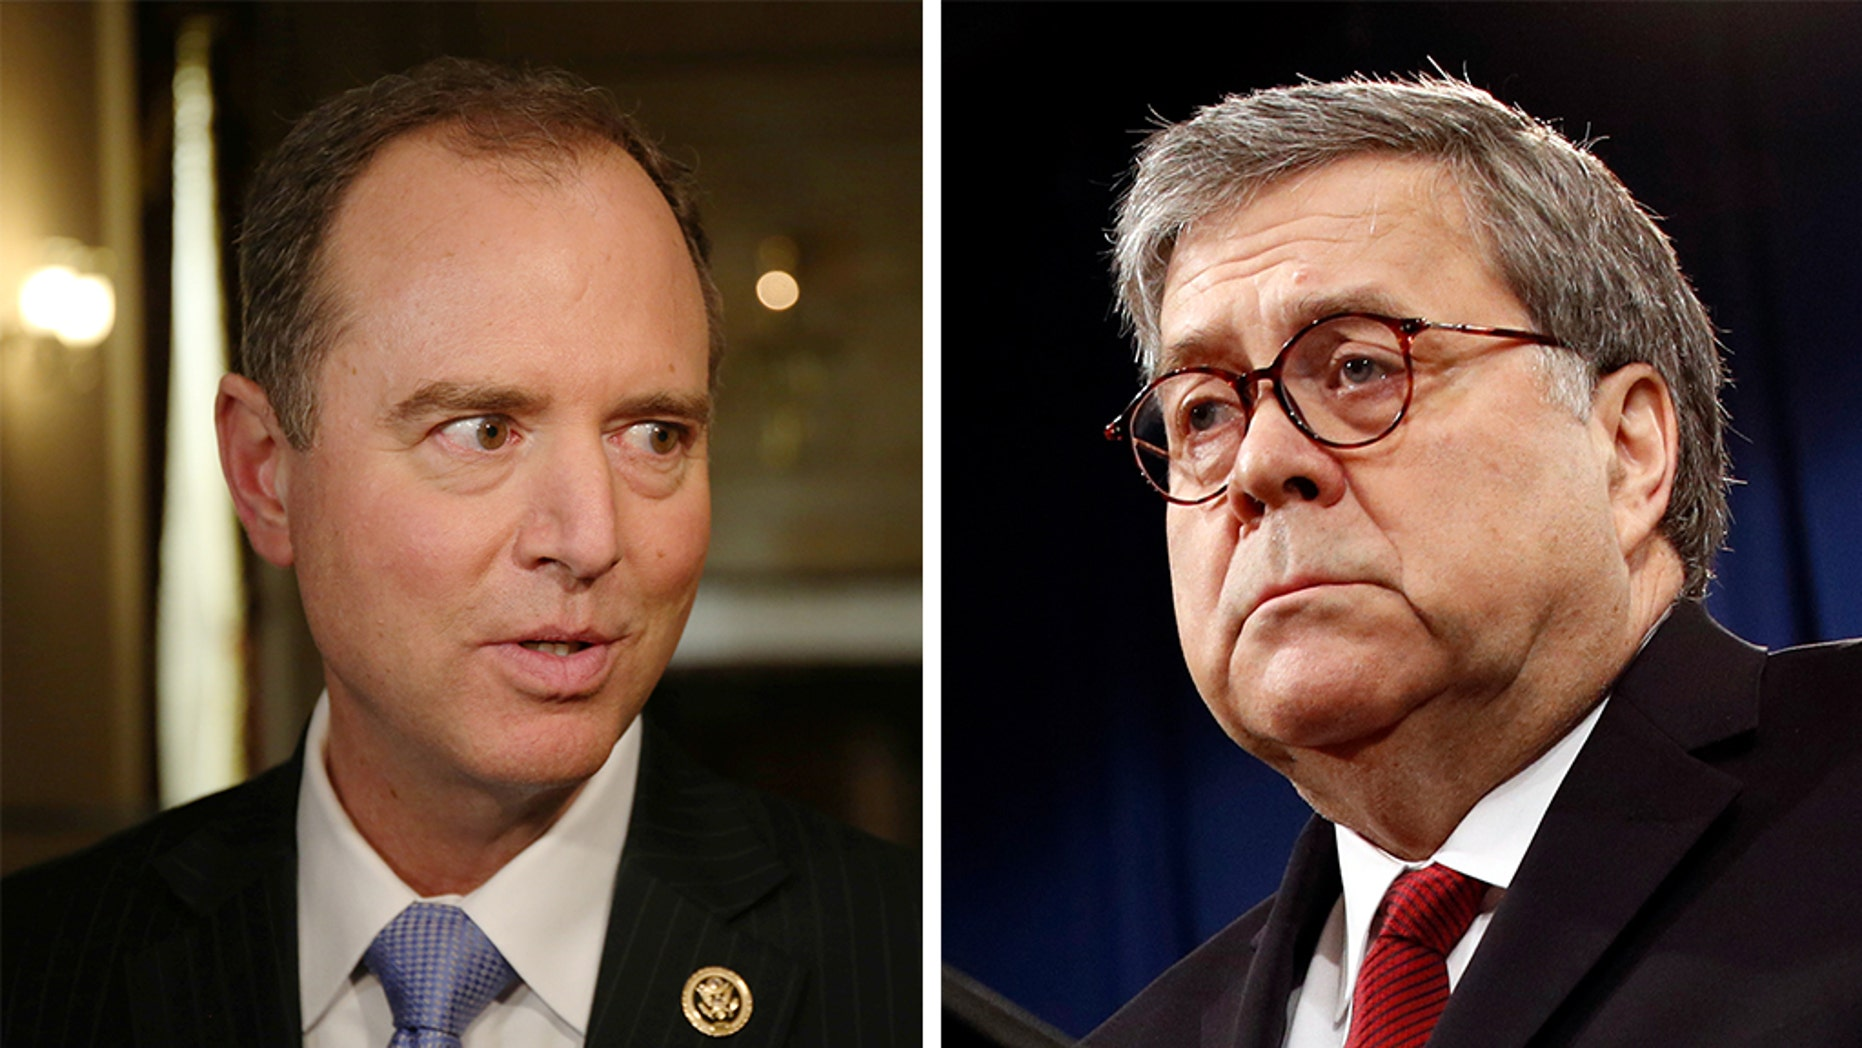 Rep. Adam Schiff, D-Calif., doubled down on his call for Attorney General William Barr's resignation in an op-ed published in USA Today on Friday morning.